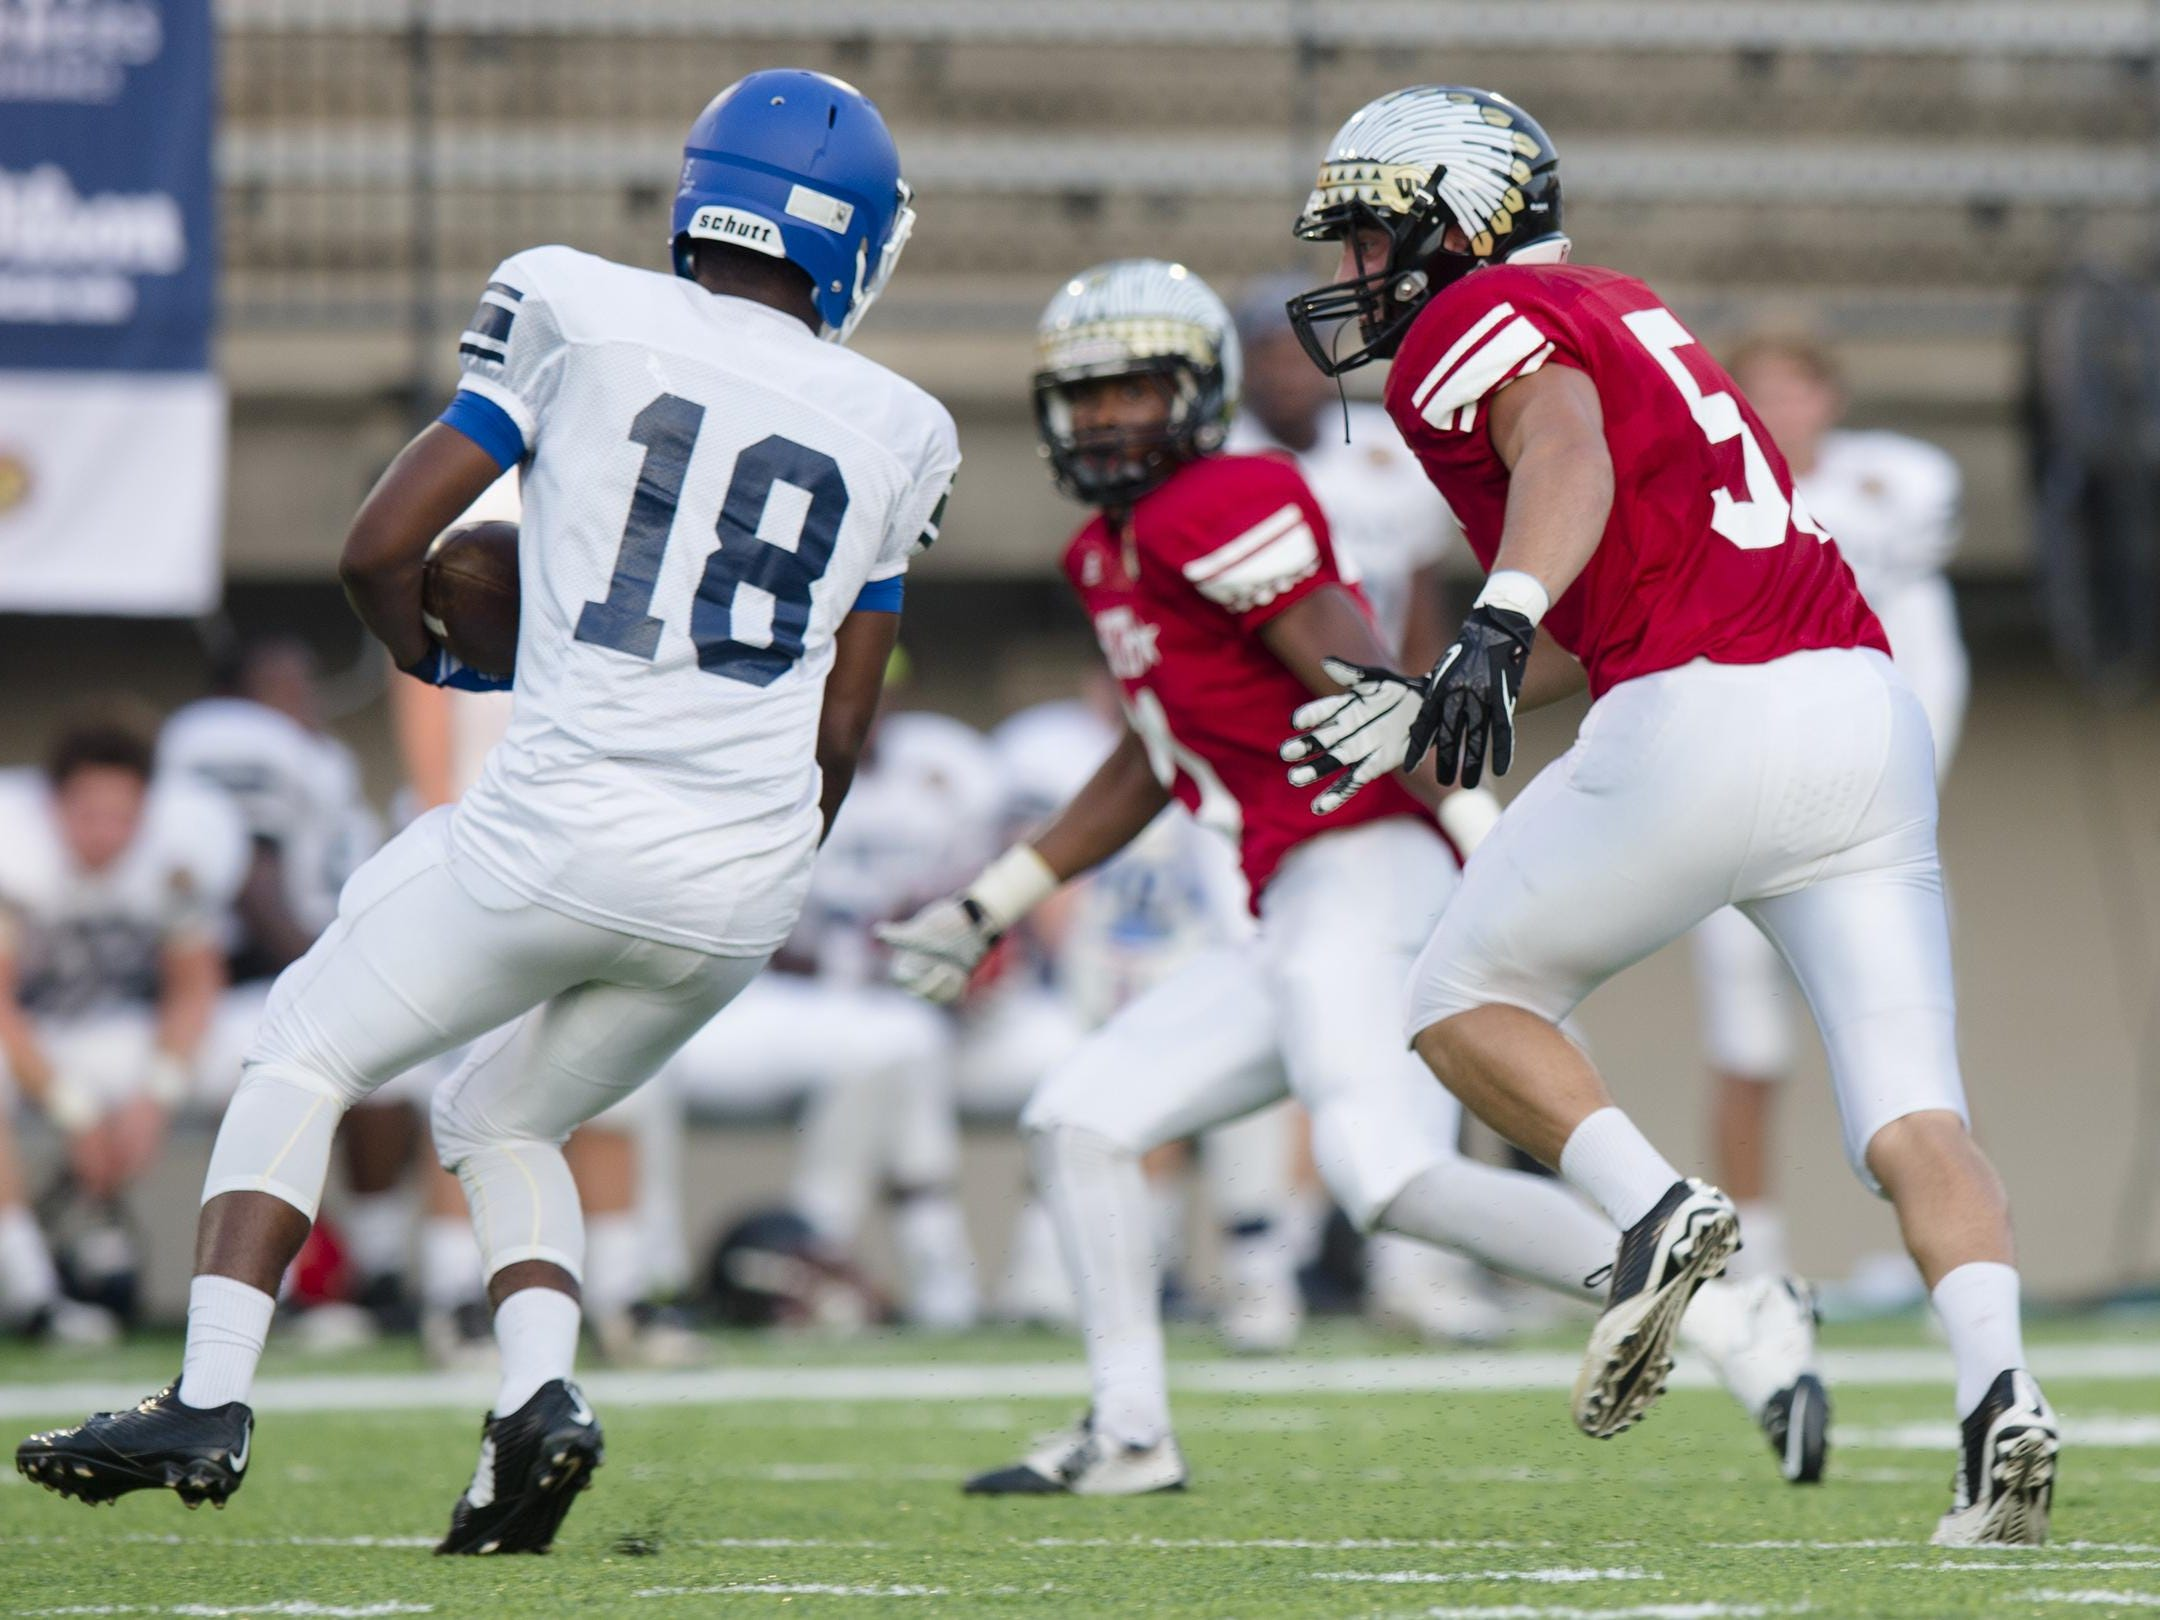 South All-Star Cameron Compton of Wetumpka chases down North All-Star Eddie Williams of Tuscaloosa County during the AHSAA North vs. South All Star game on Friday, July 17, 2015, in Montgomery, Ala.